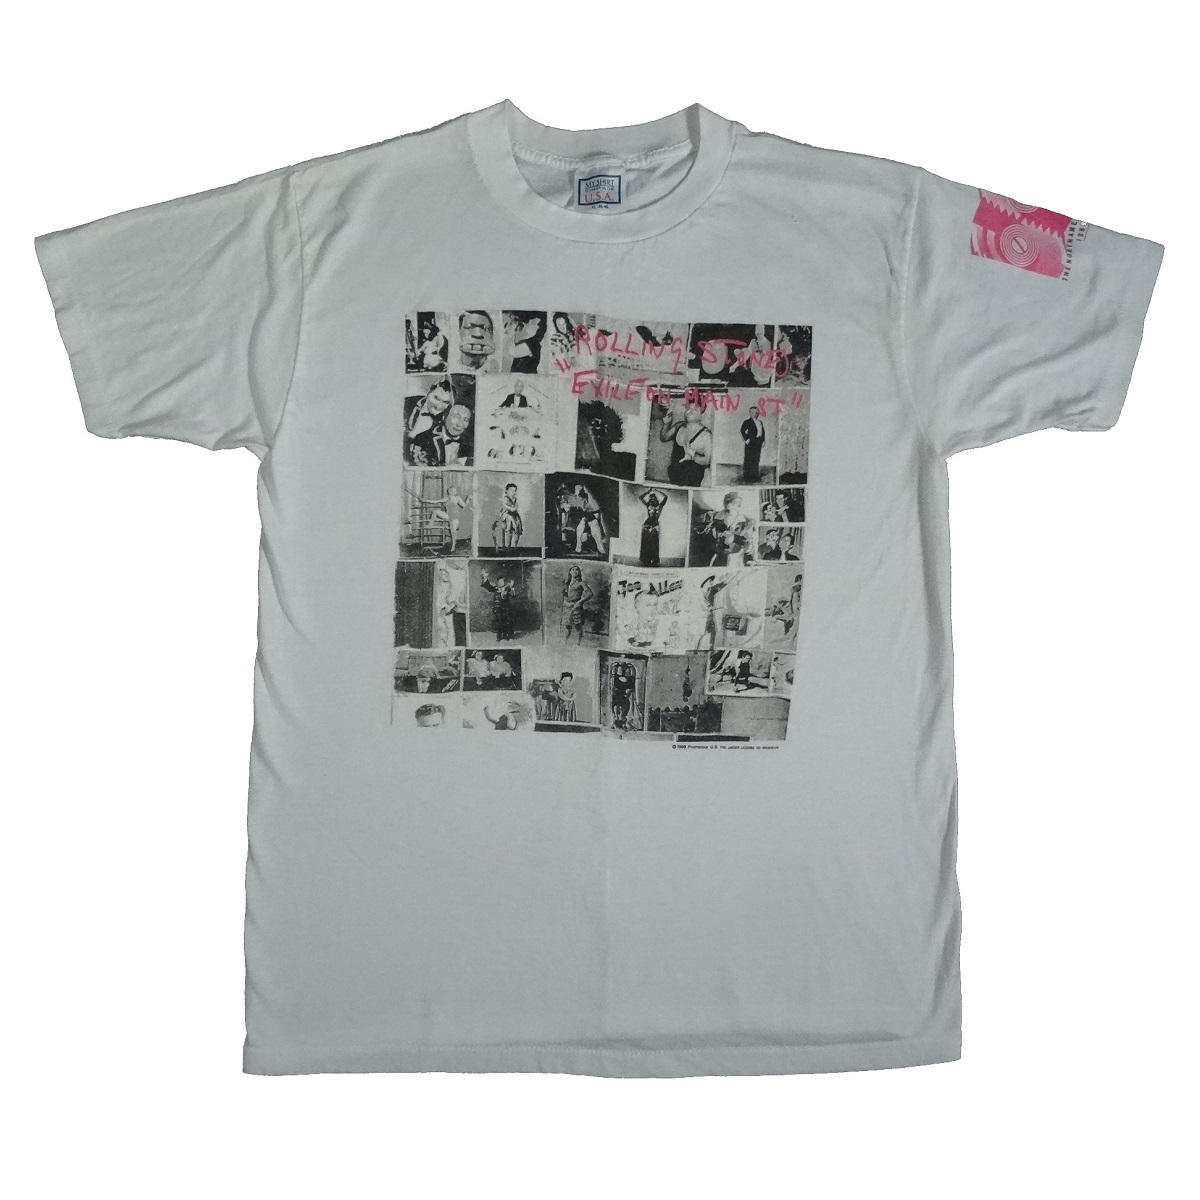 rolling stones exile on main street 1989 steel wheels vintage concert t shirt front of shirt